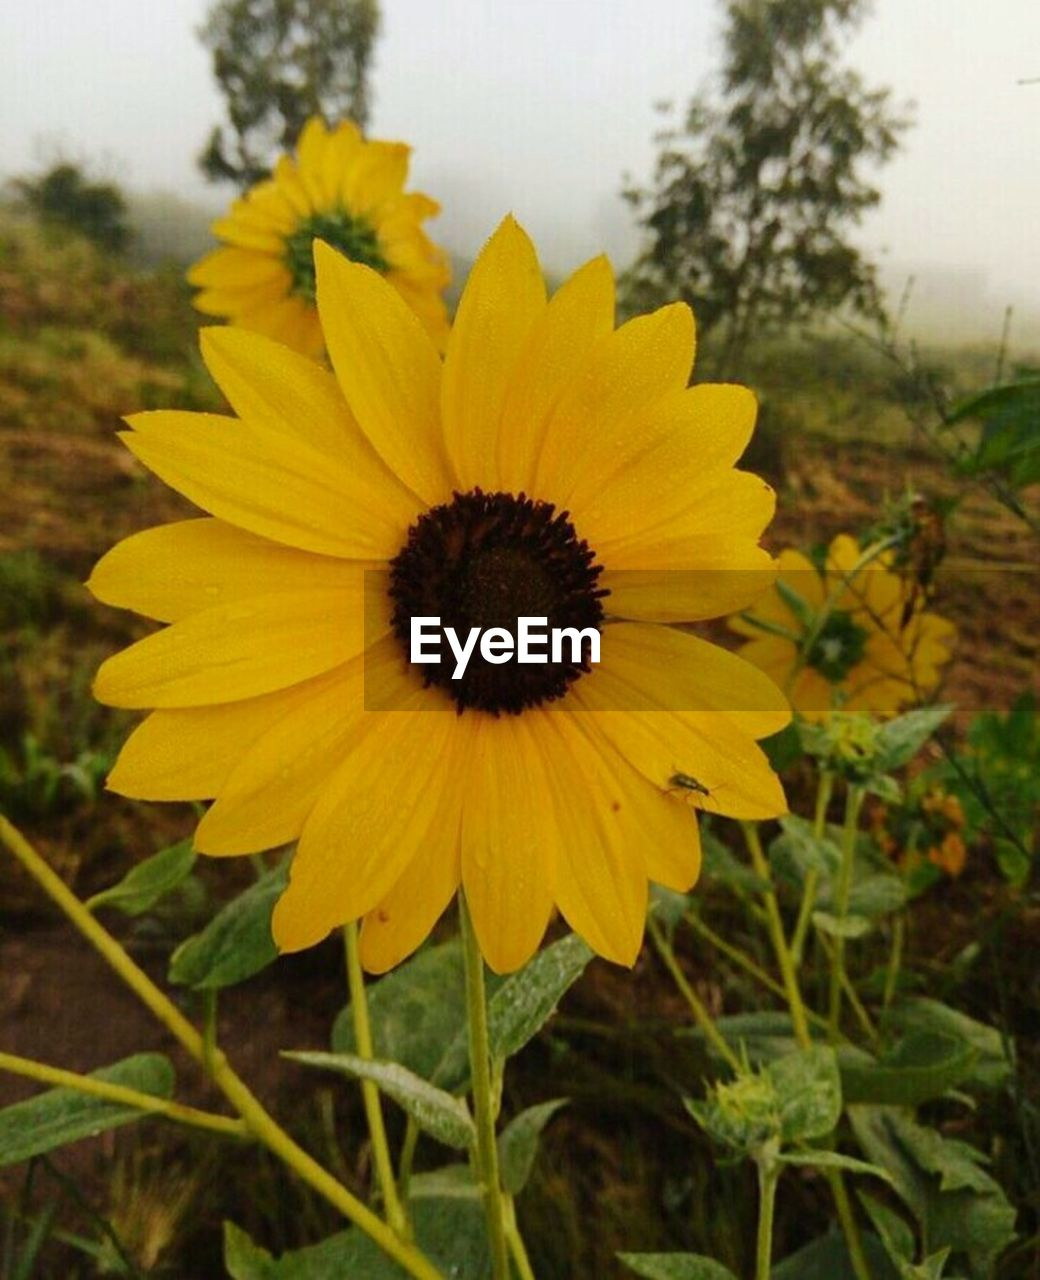 flower, yellow, petal, fragility, growth, nature, plant, flower head, focus on foreground, freshness, beauty in nature, day, field, outdoors, blooming, no people, close-up, black-eyed susan